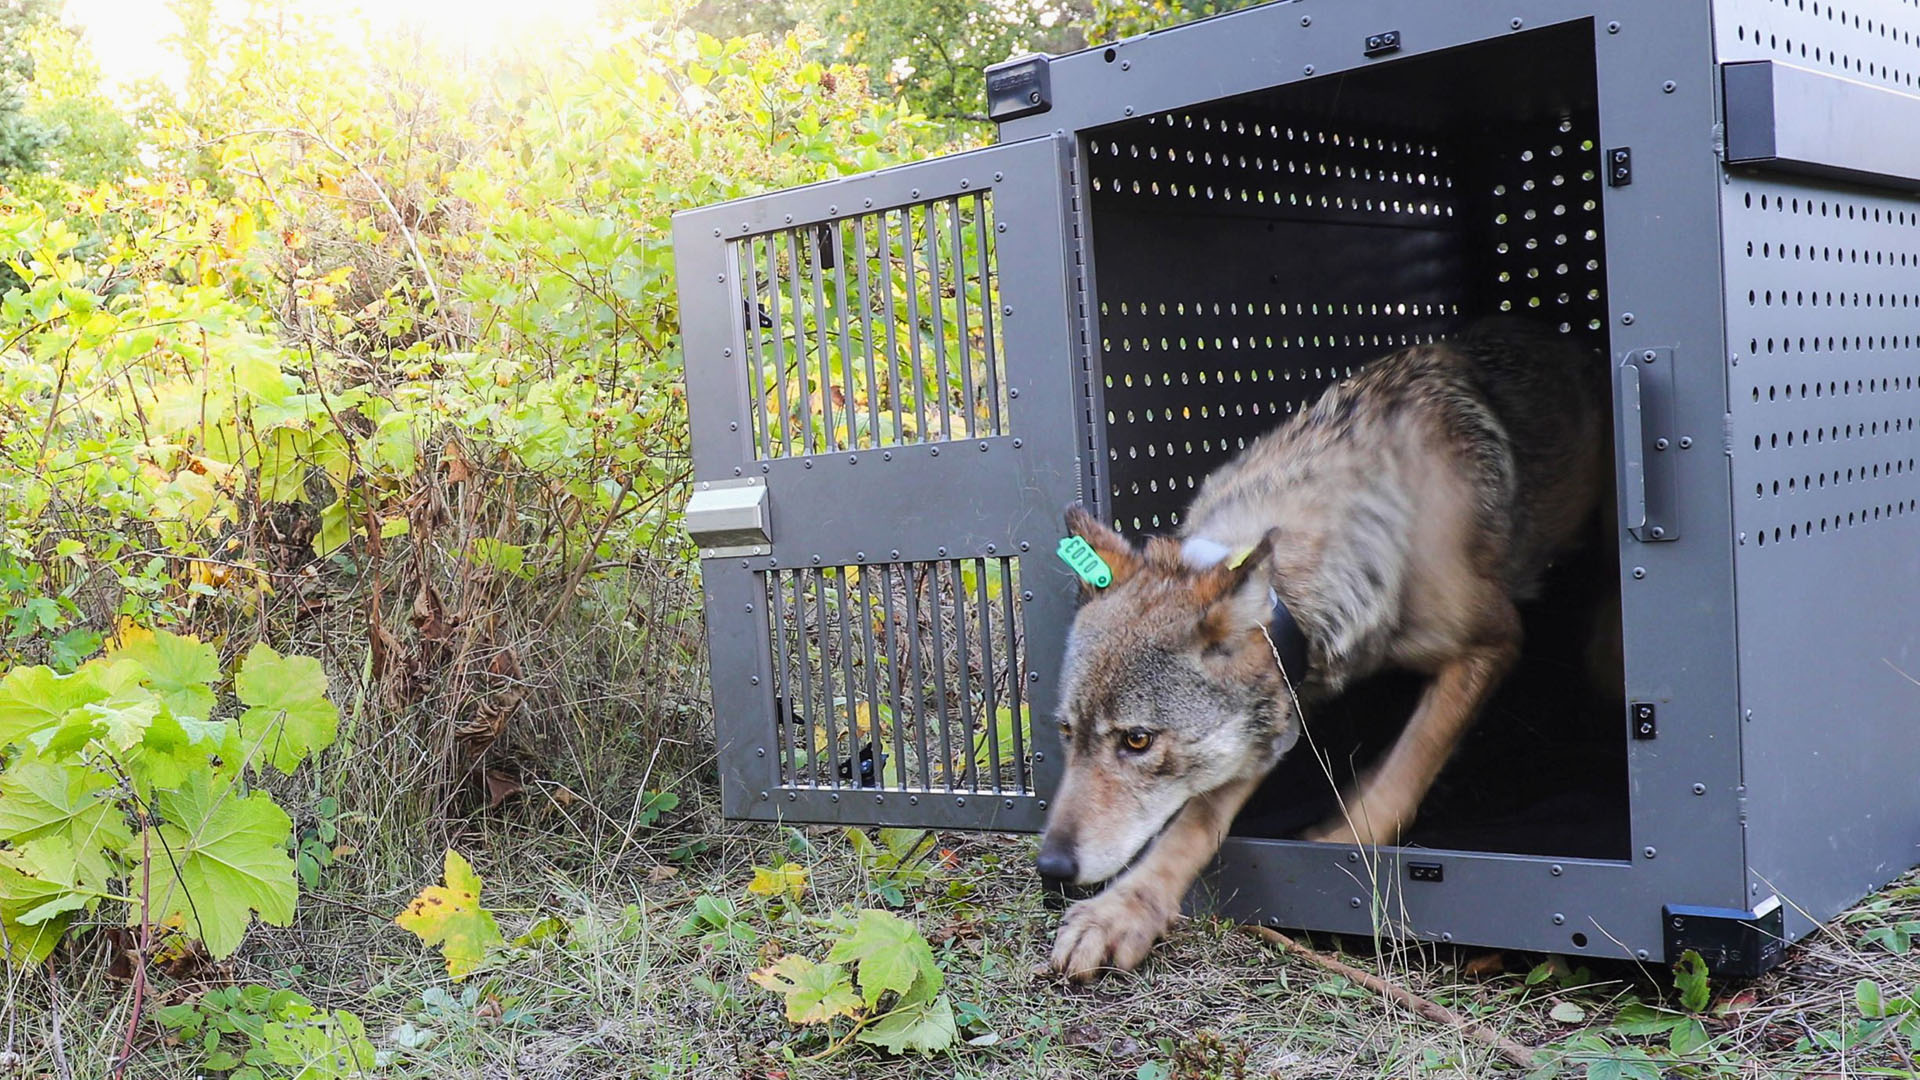 FILE - This Sept. 26, 2018, file photo provided by the National Park Service shows a 4-year-old female gray wolf emerging from her cage at Isle Royale National Park in Michigan.(National Park Service via AP, File)